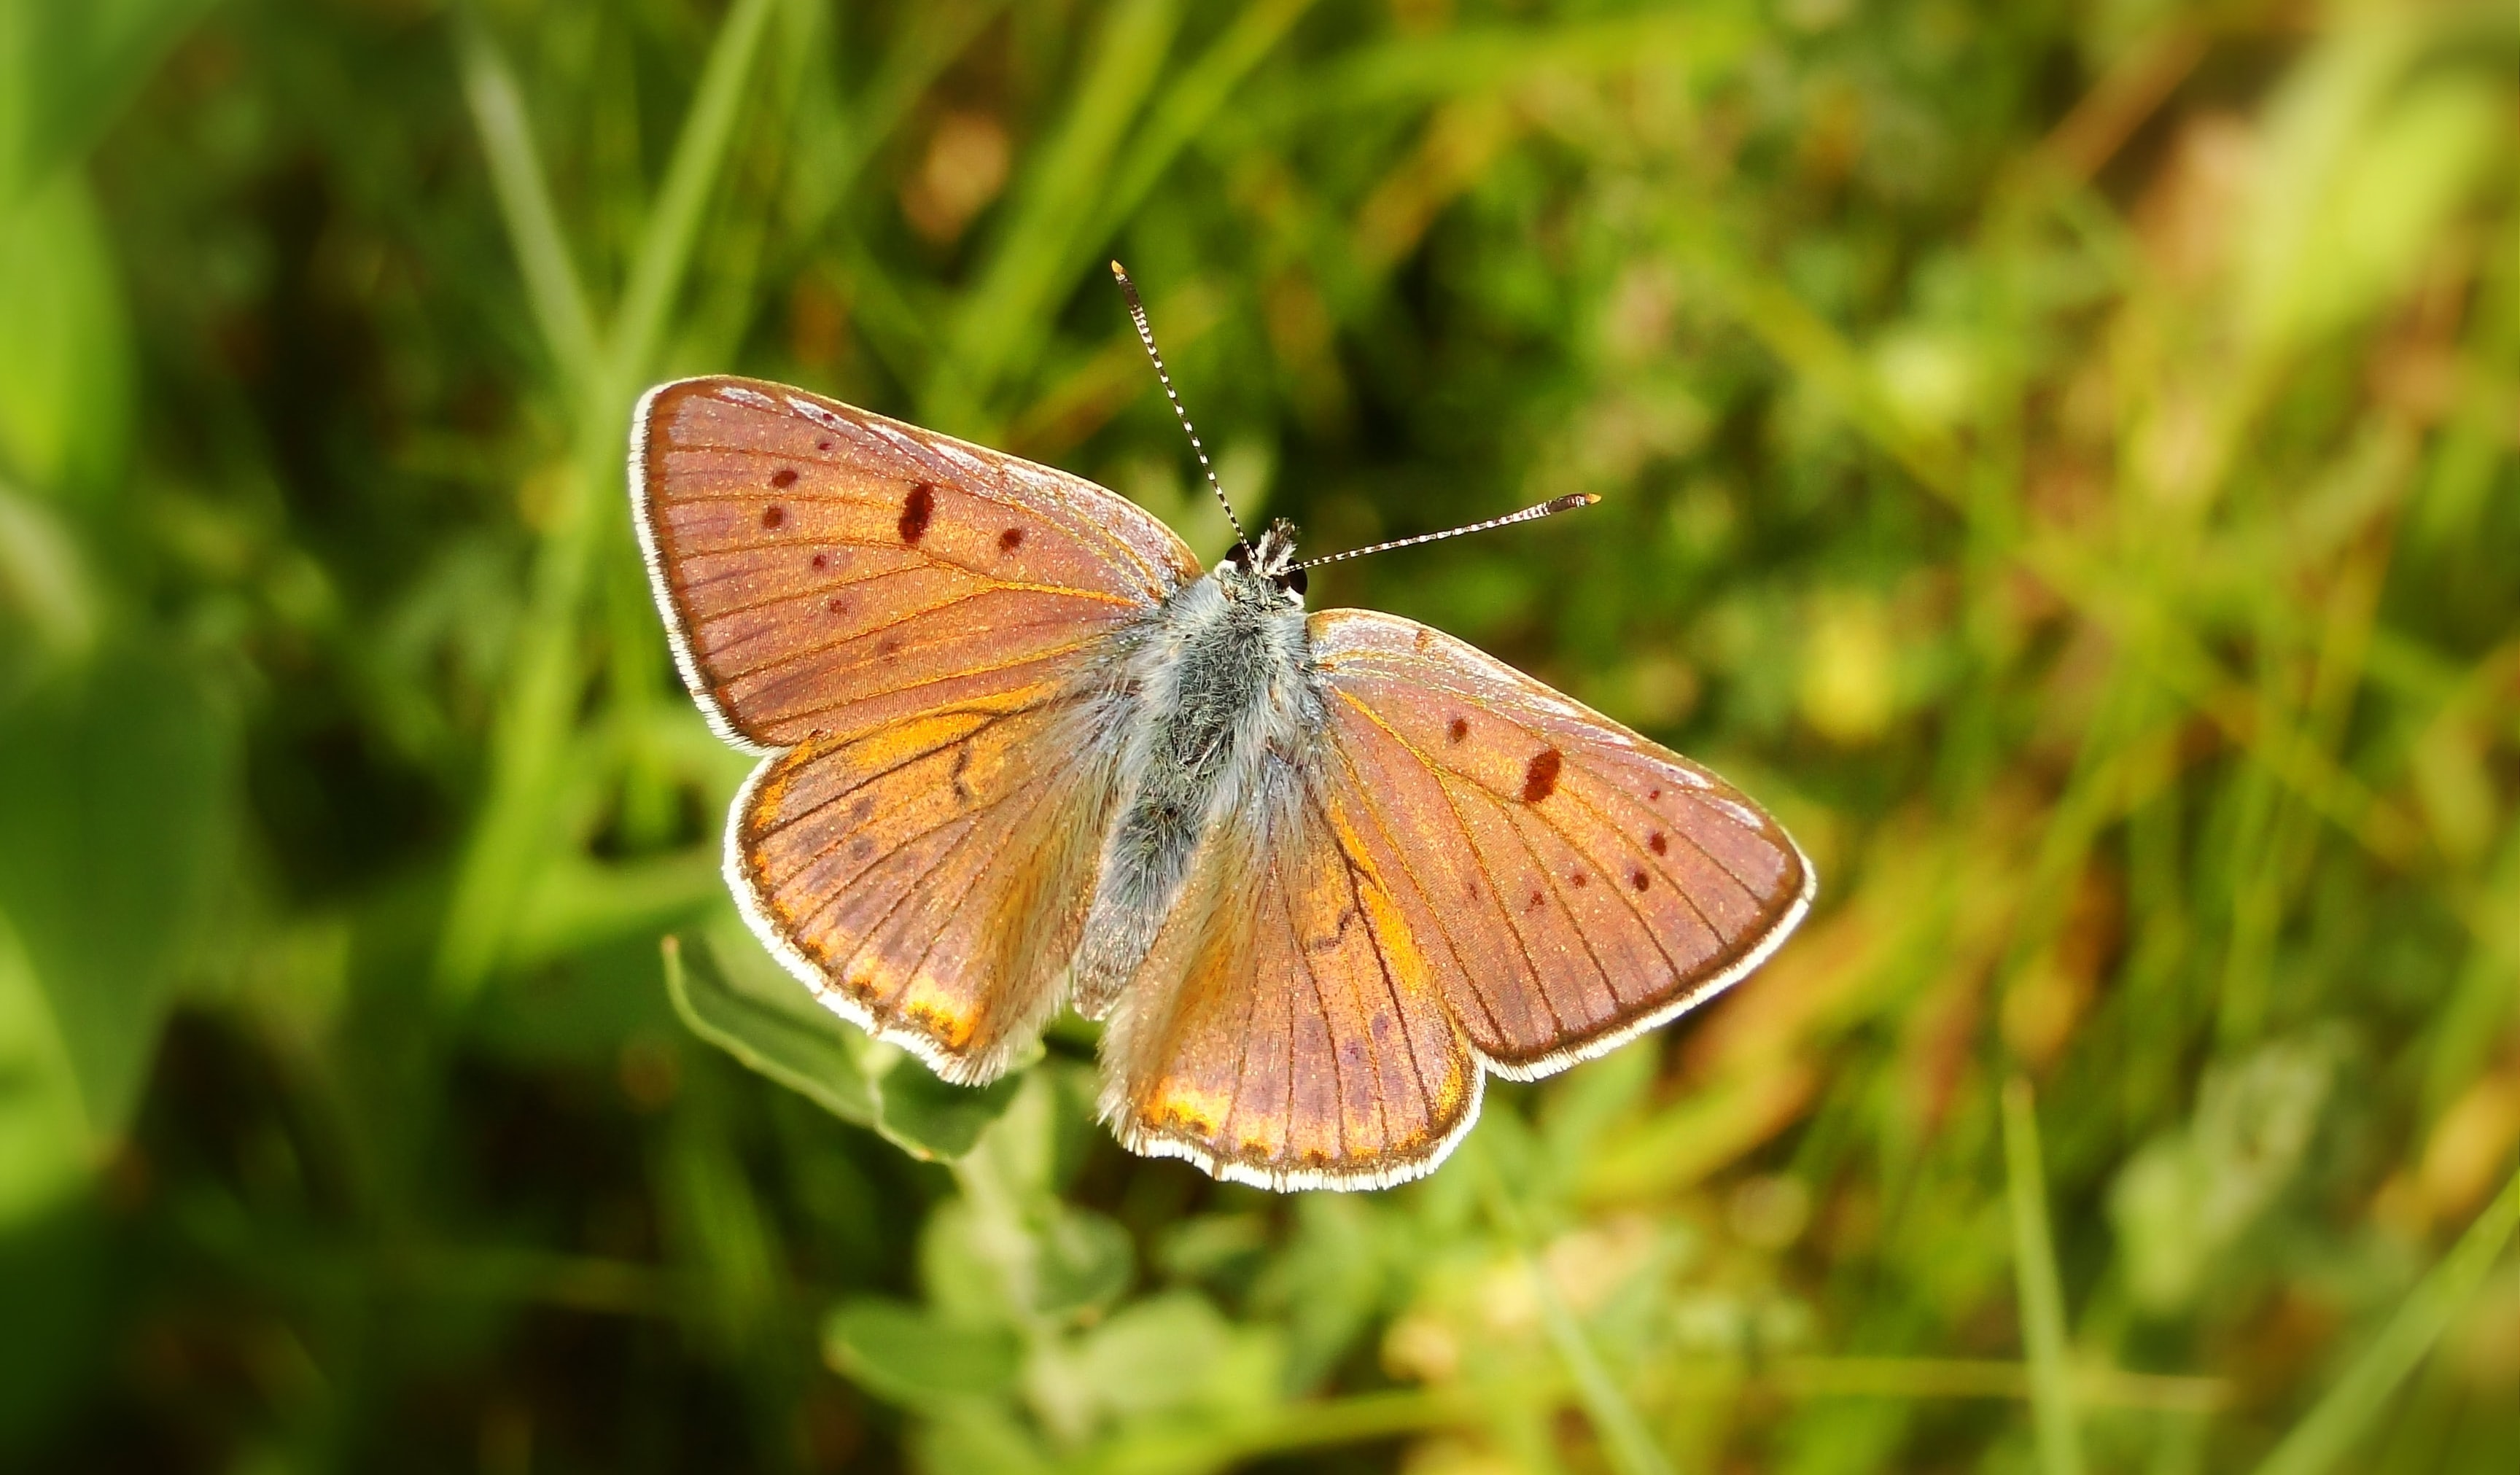 brown butterfly flying